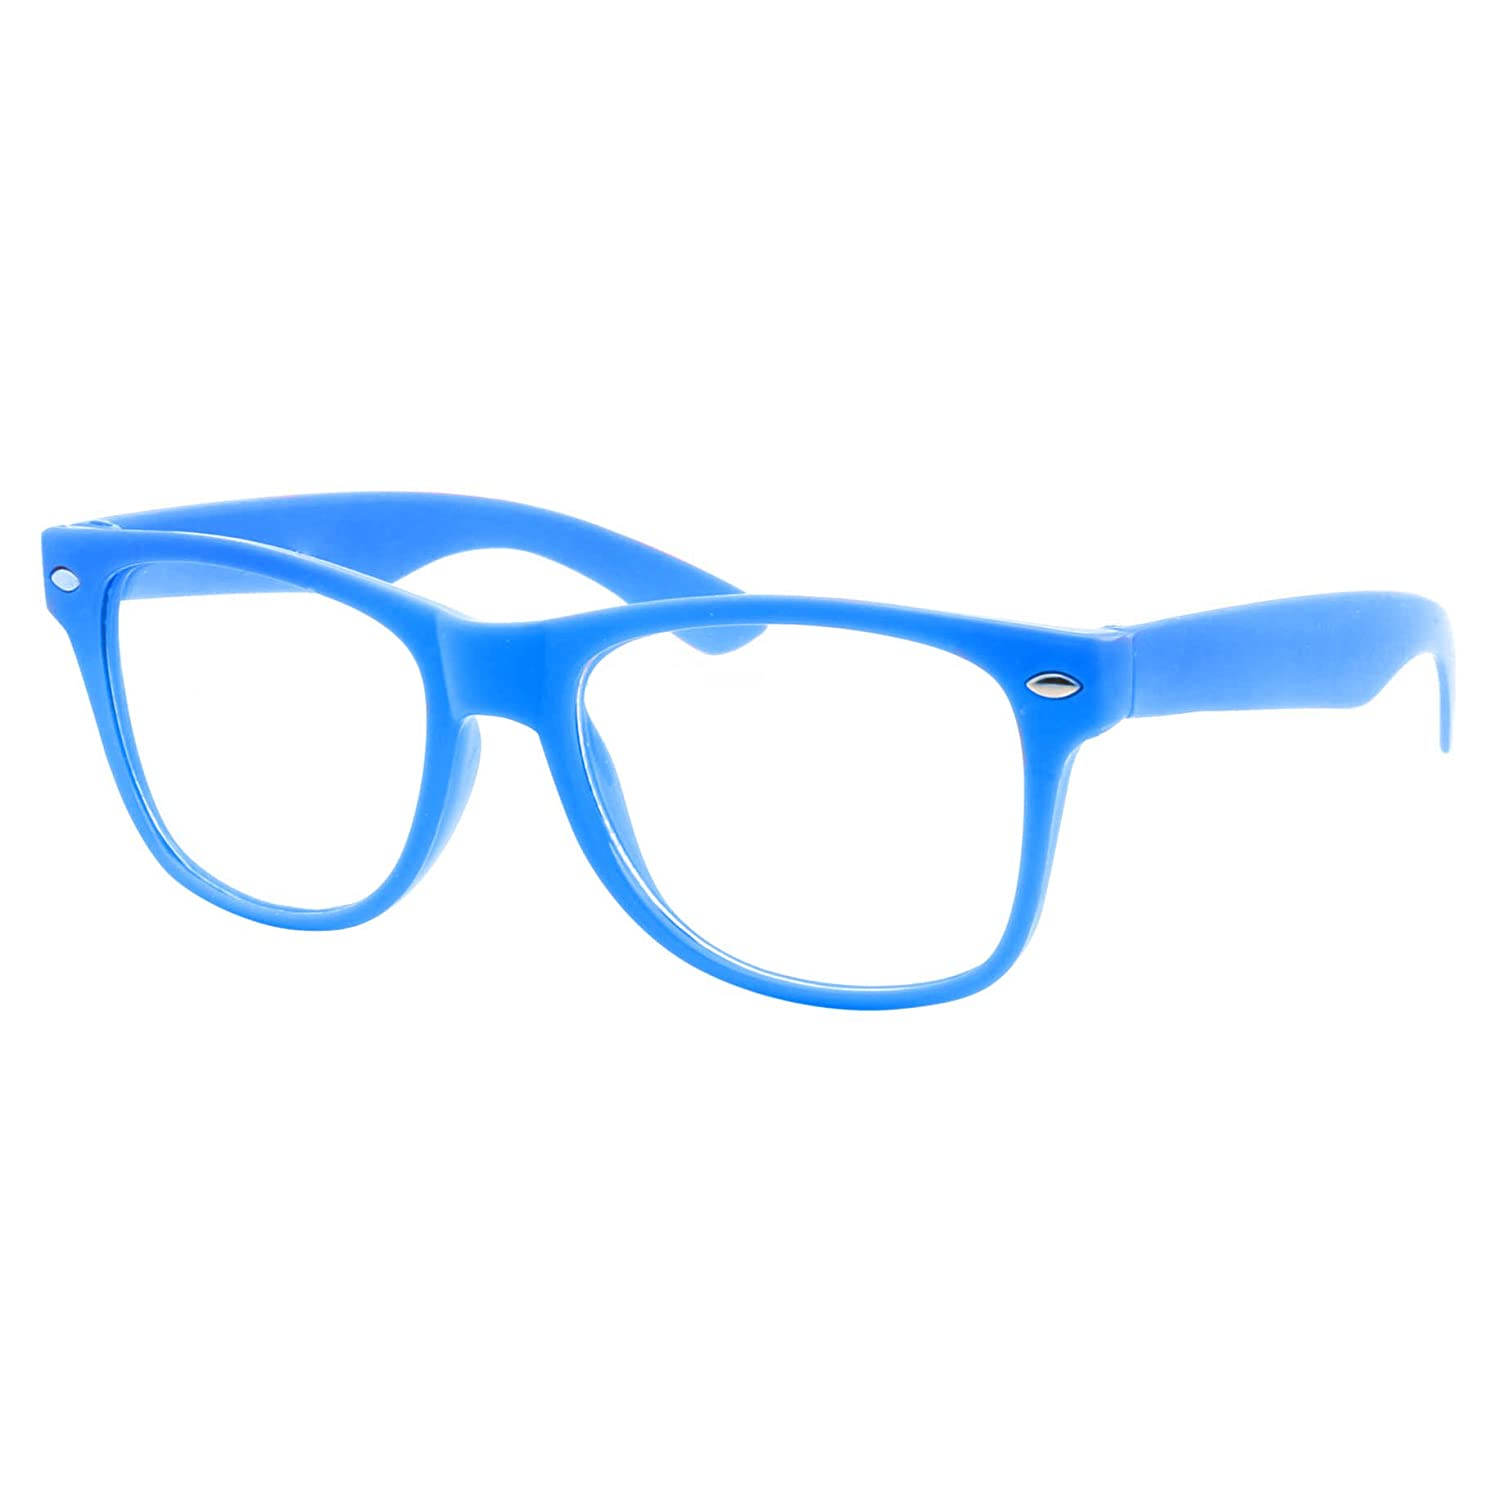 0e01ce249a Amazon.com  grinderPUNCH Kids Size Color Glasses Clear Lens Nerd Geek  Costume Fake Children s (Ages 3-10) (Blue)  Clothing